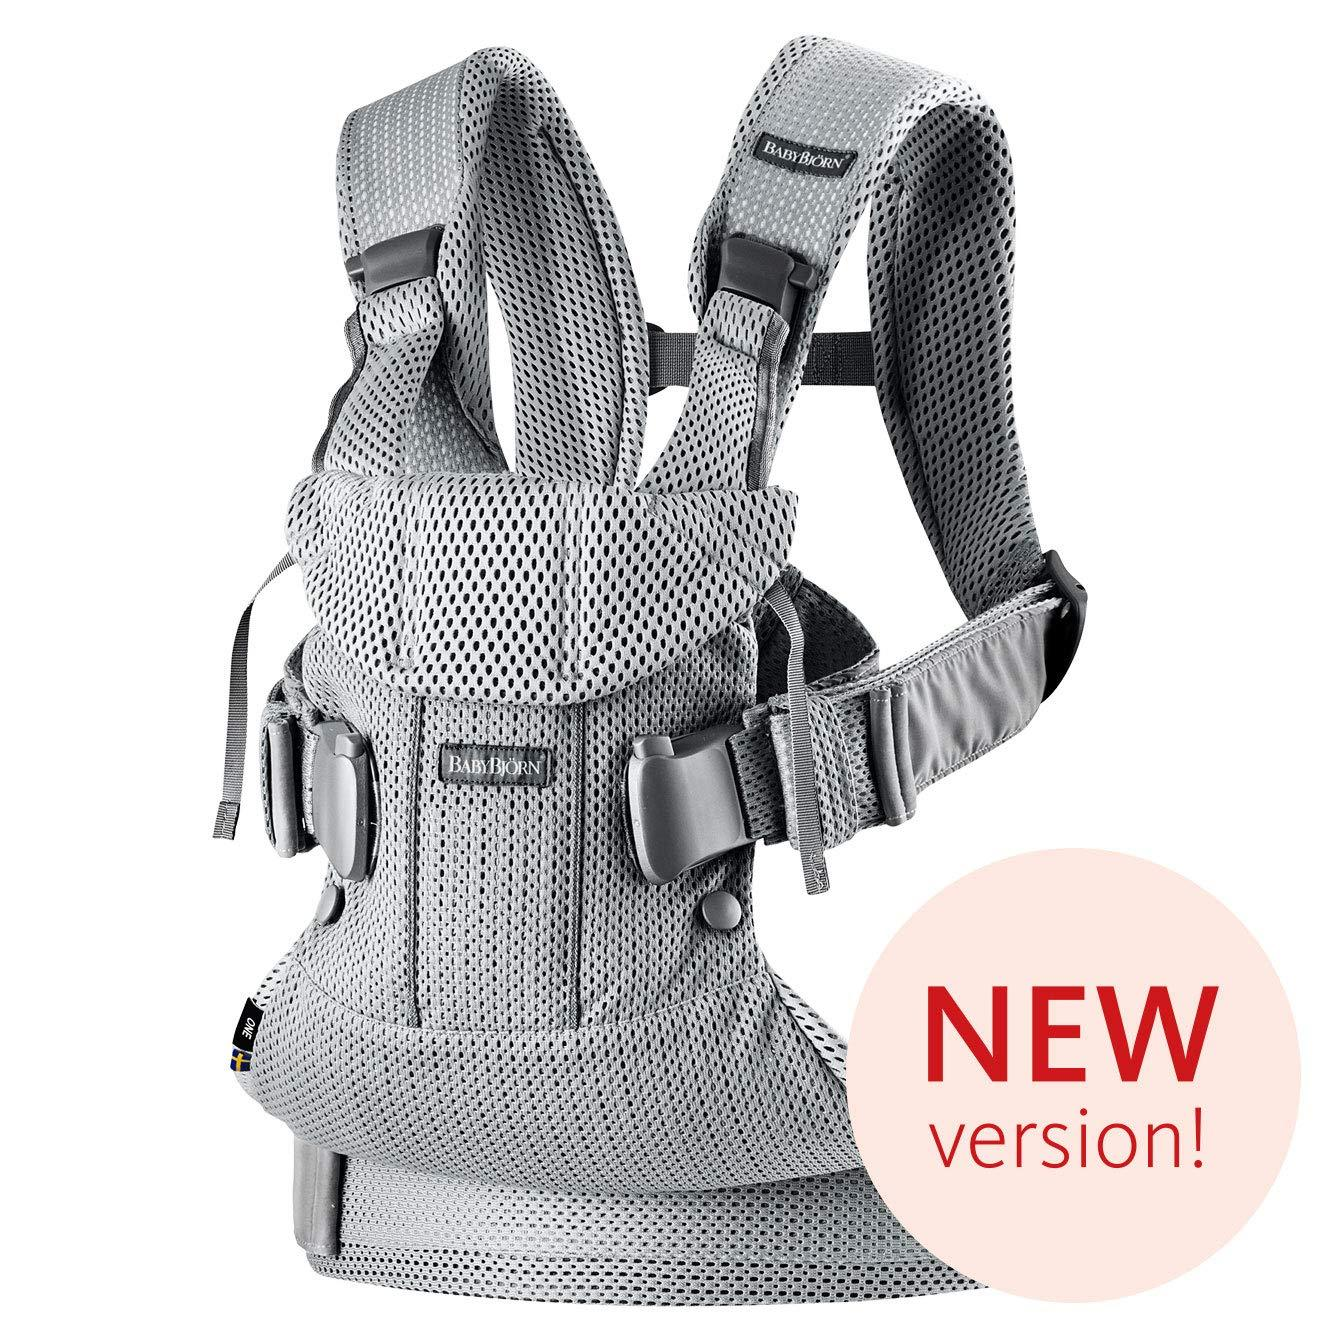 Babybjorn New Baby Carrier One Air 2019 Edition Mesh Silver Hudson Baby Company Ergonomic Baby Carrier Baby Bjorn Carrier Baby Sling Carrier [ 1342 x 1342 Pixel ]